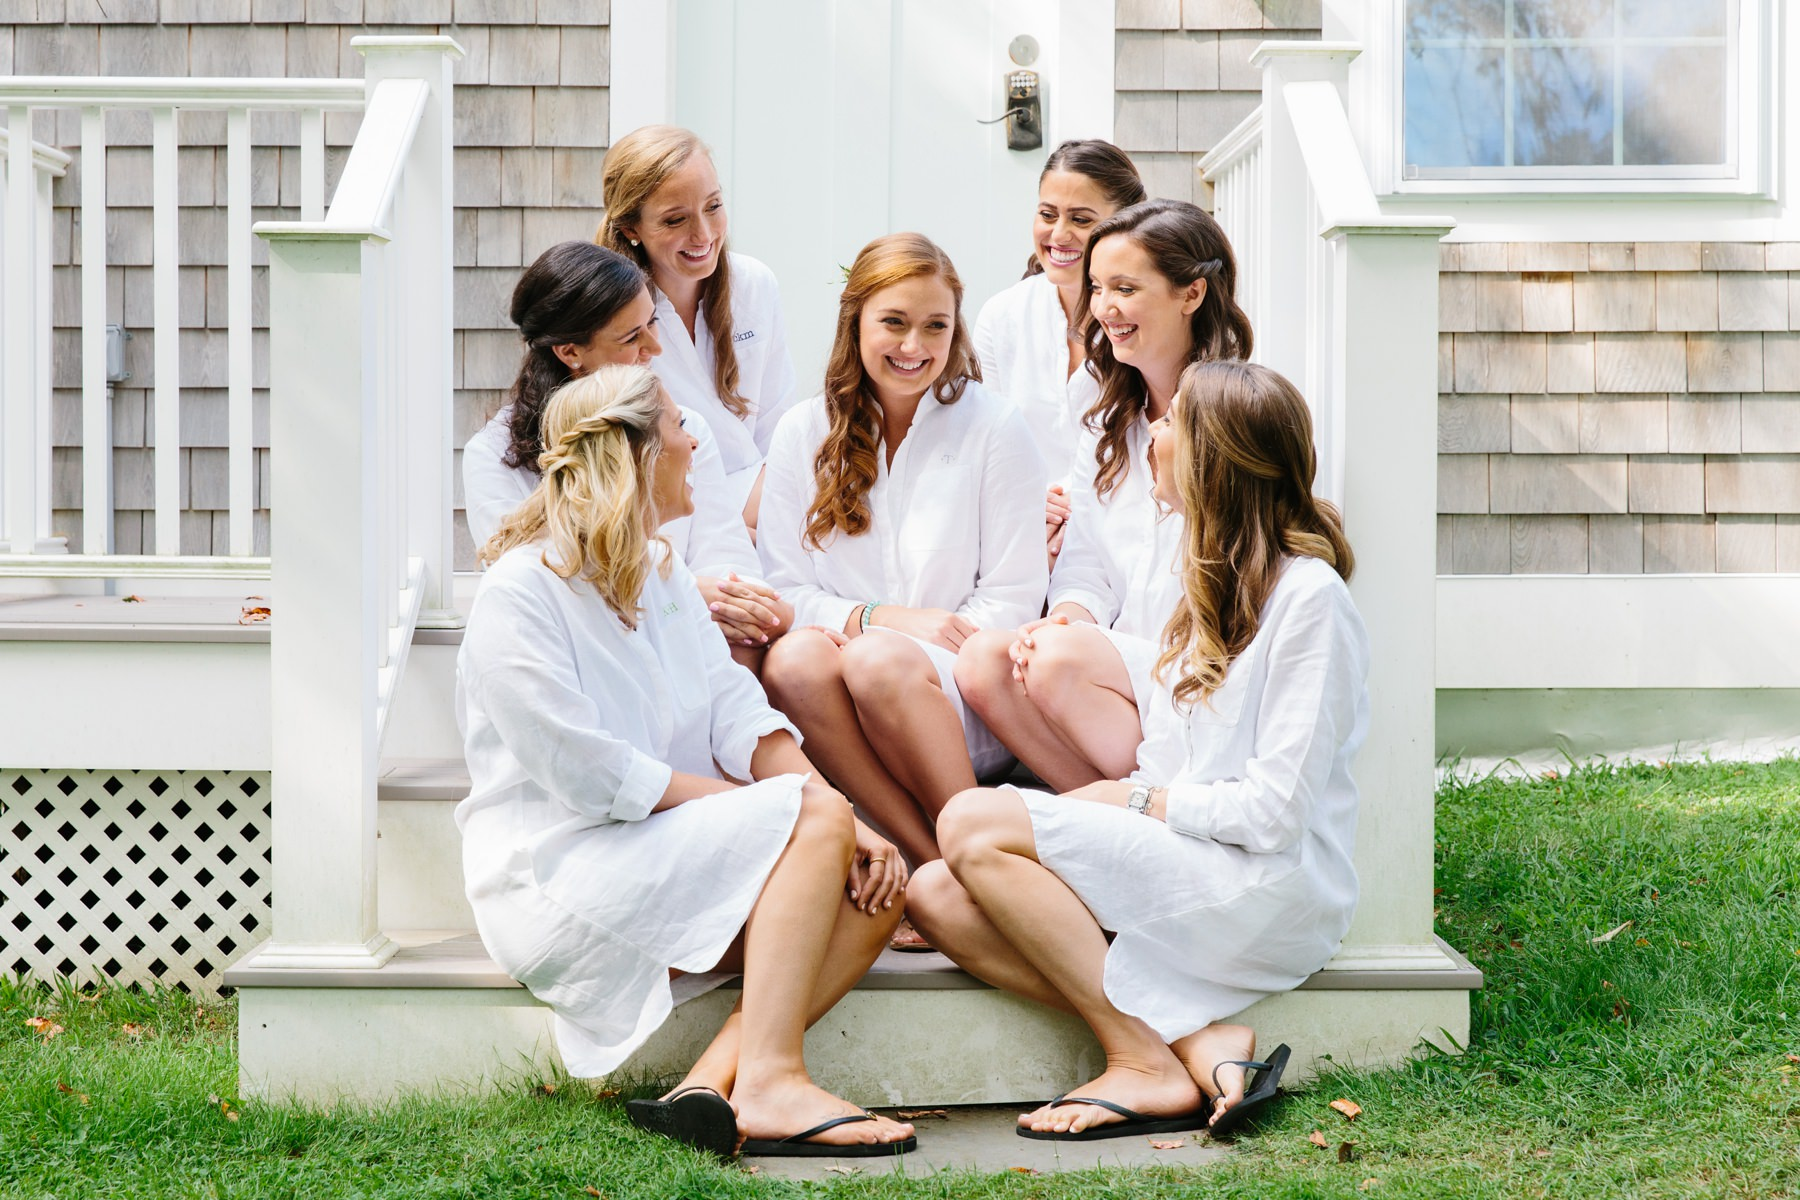 bridesmaids chat on porch